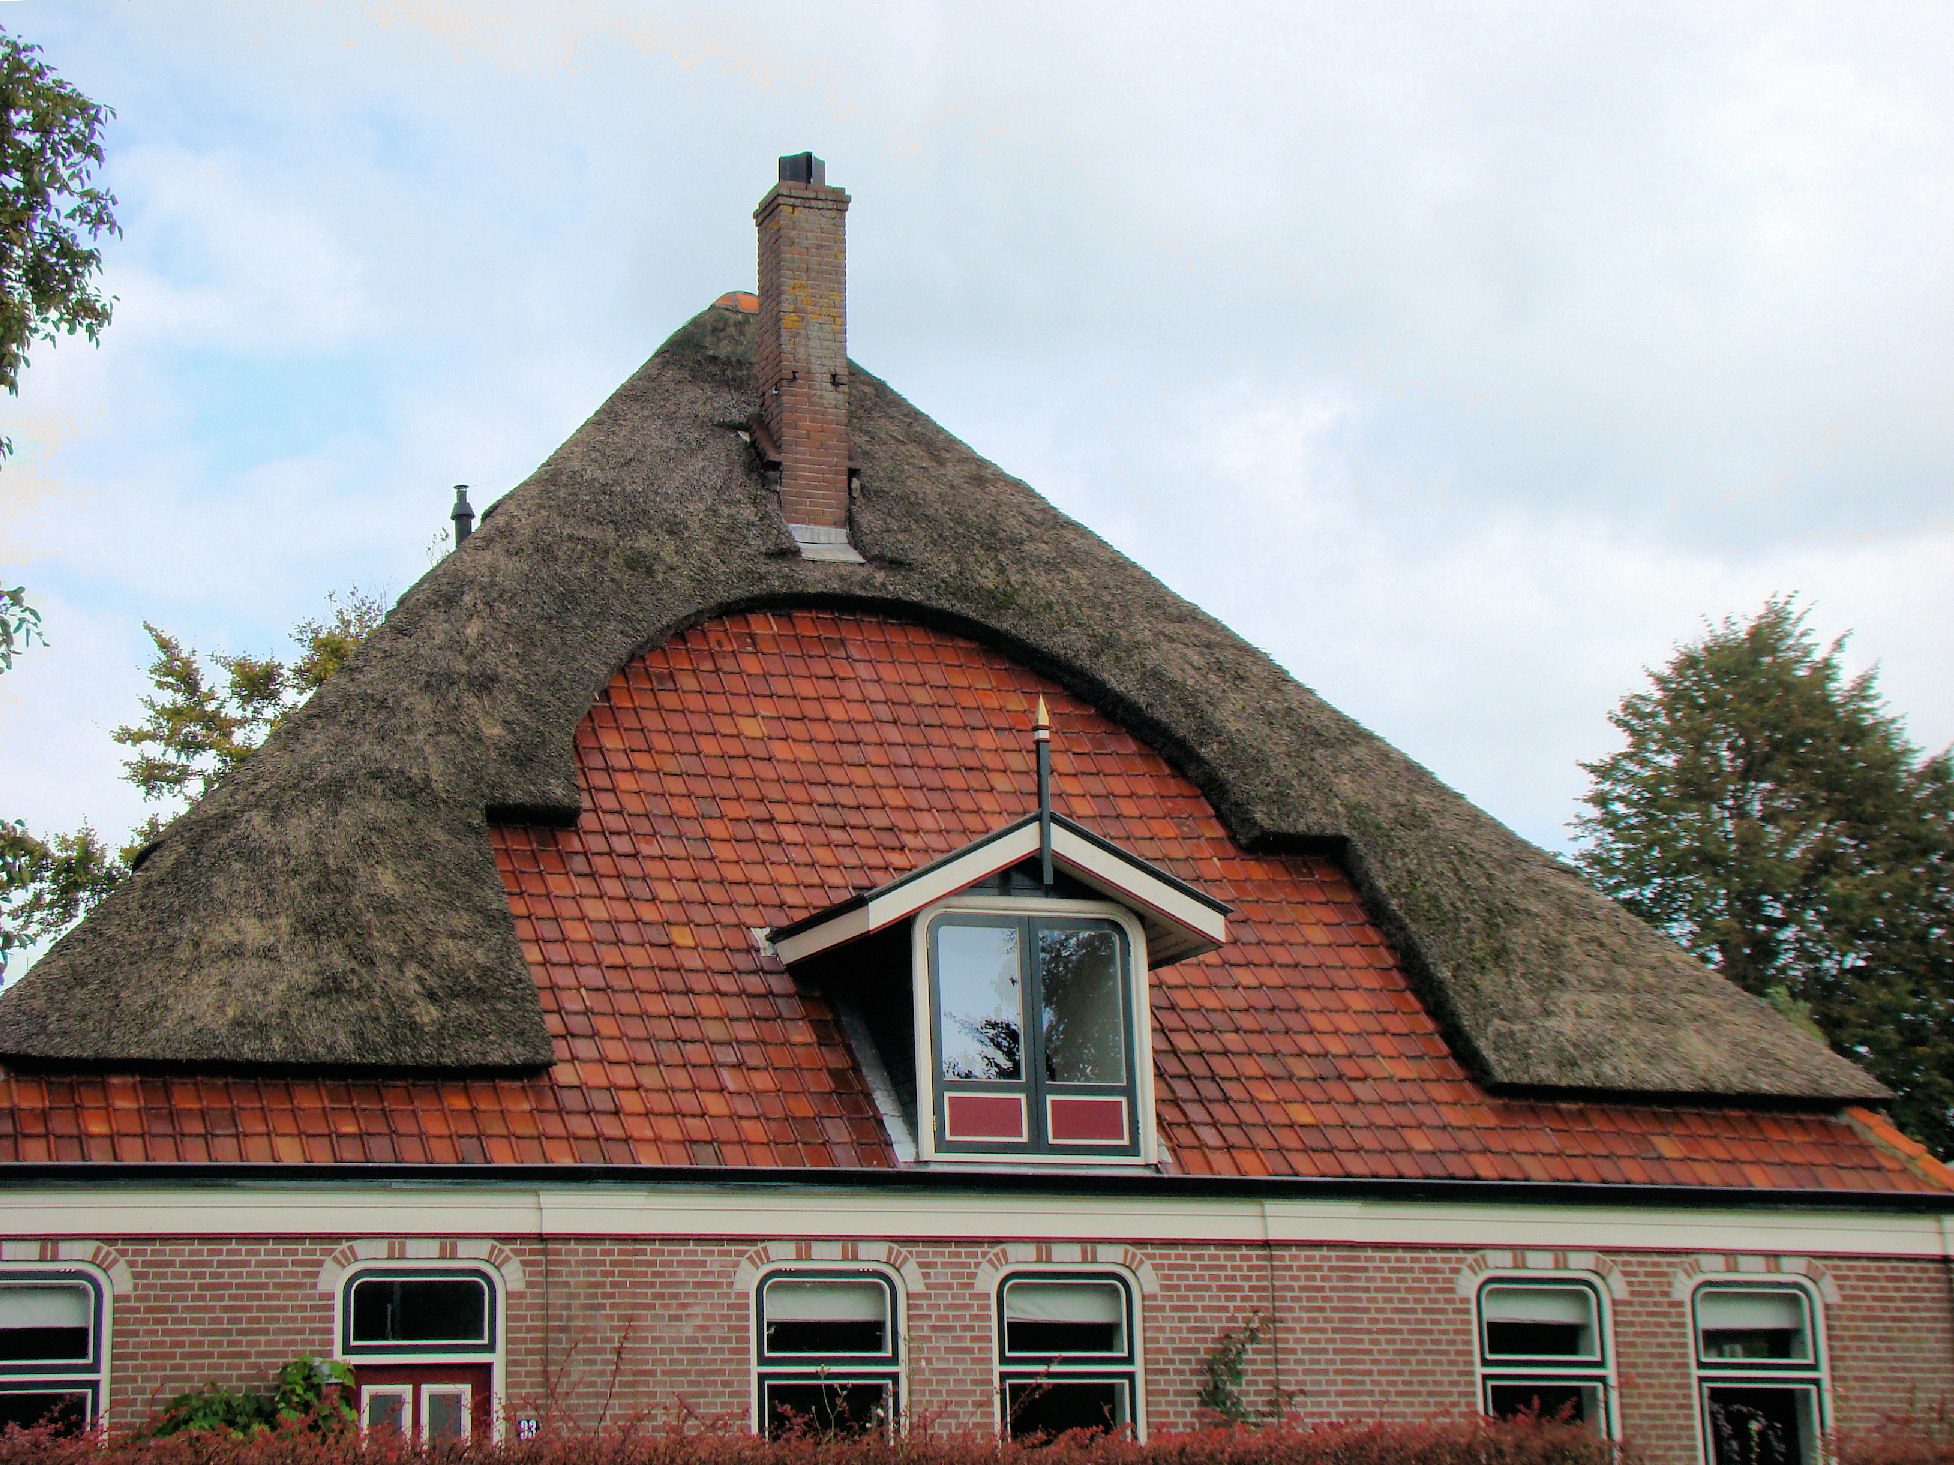 Partially_thatched_roof.jpg